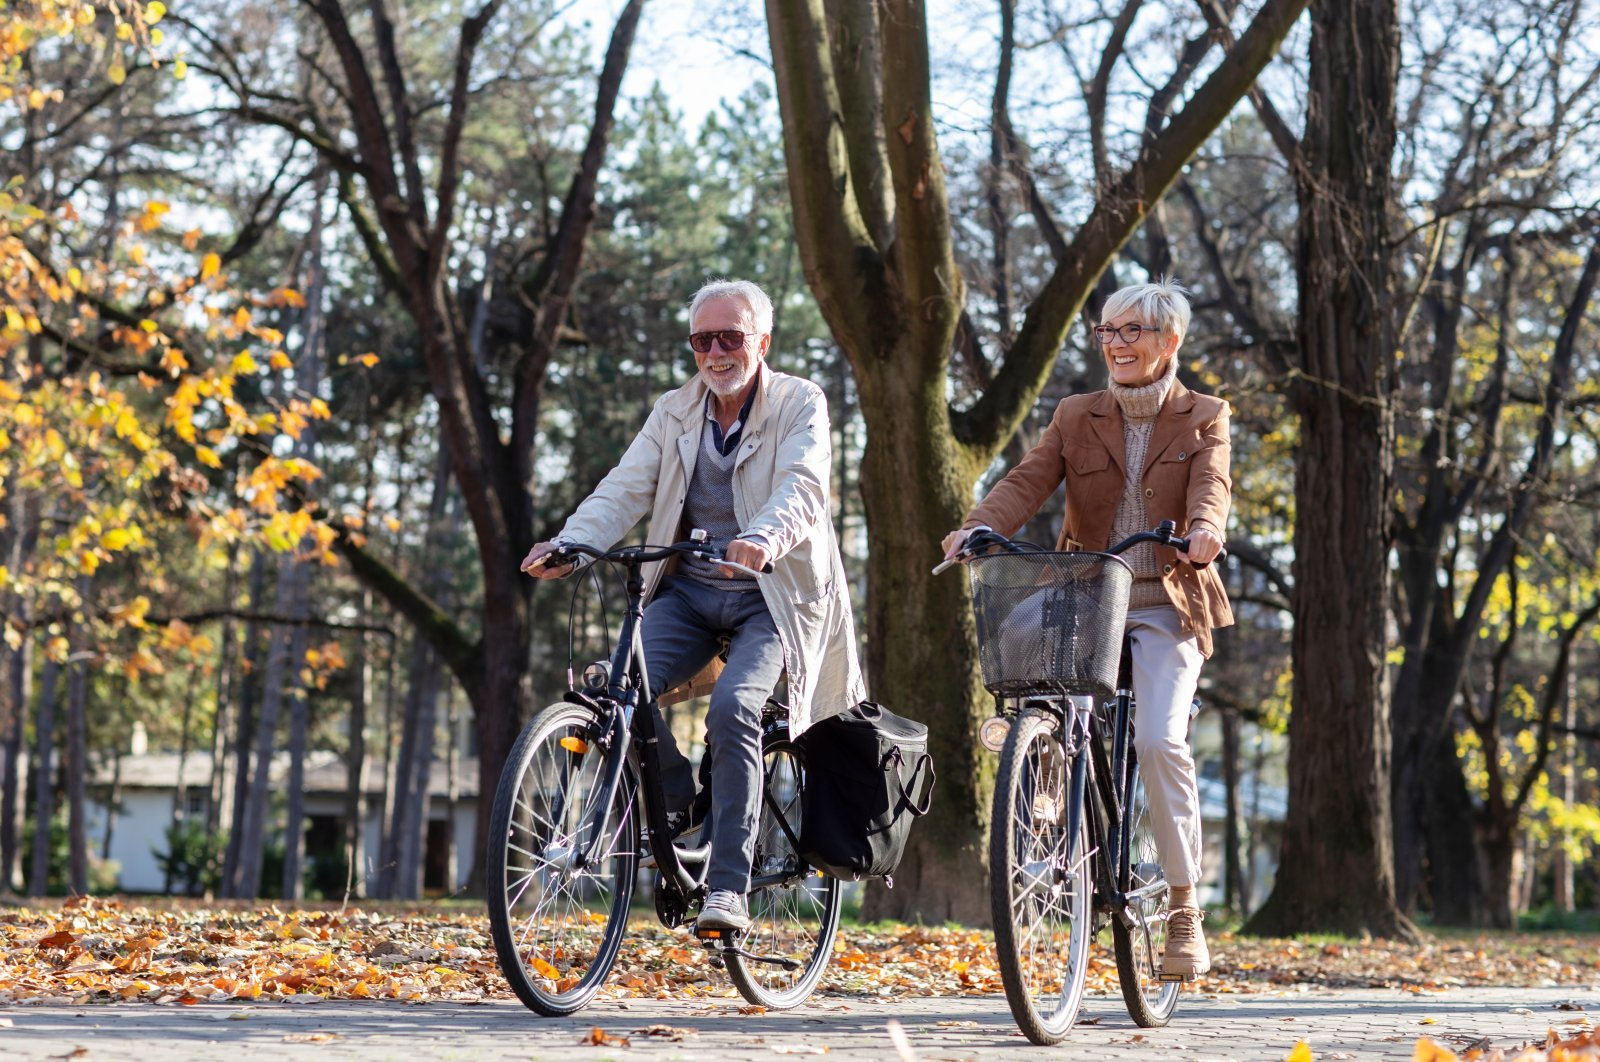 A mature fit couple ride bicycles in a public park. (Shutterstock Photo)